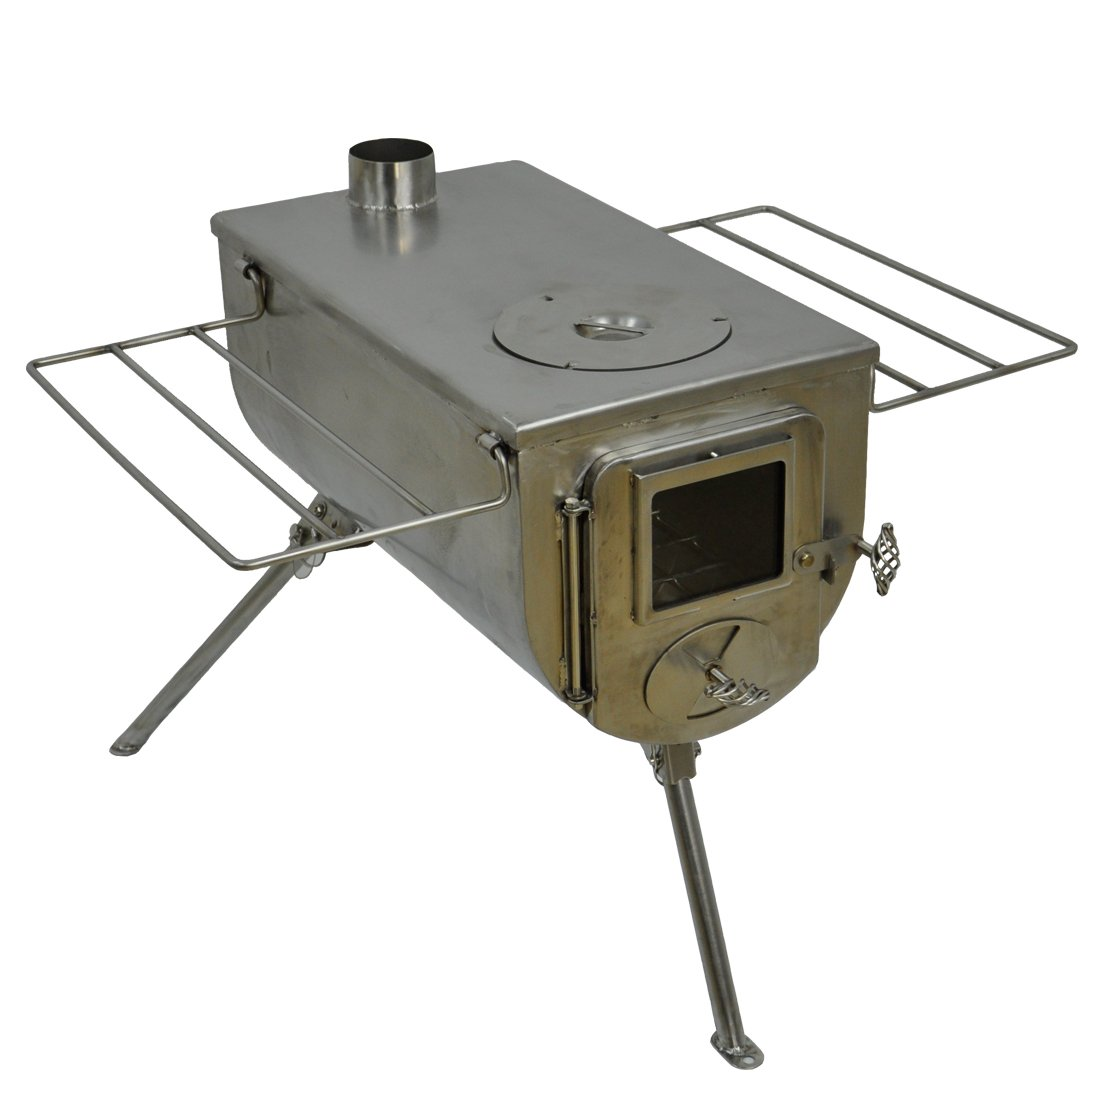 Amazon.com  Winnerwell Woodlander Cook Wood Tent Stove  Sports u0026 Outdoors  sc 1 st  Amazon.com & Amazon.com : Winnerwell Woodlander Cook Wood Tent Stove : Sports ...